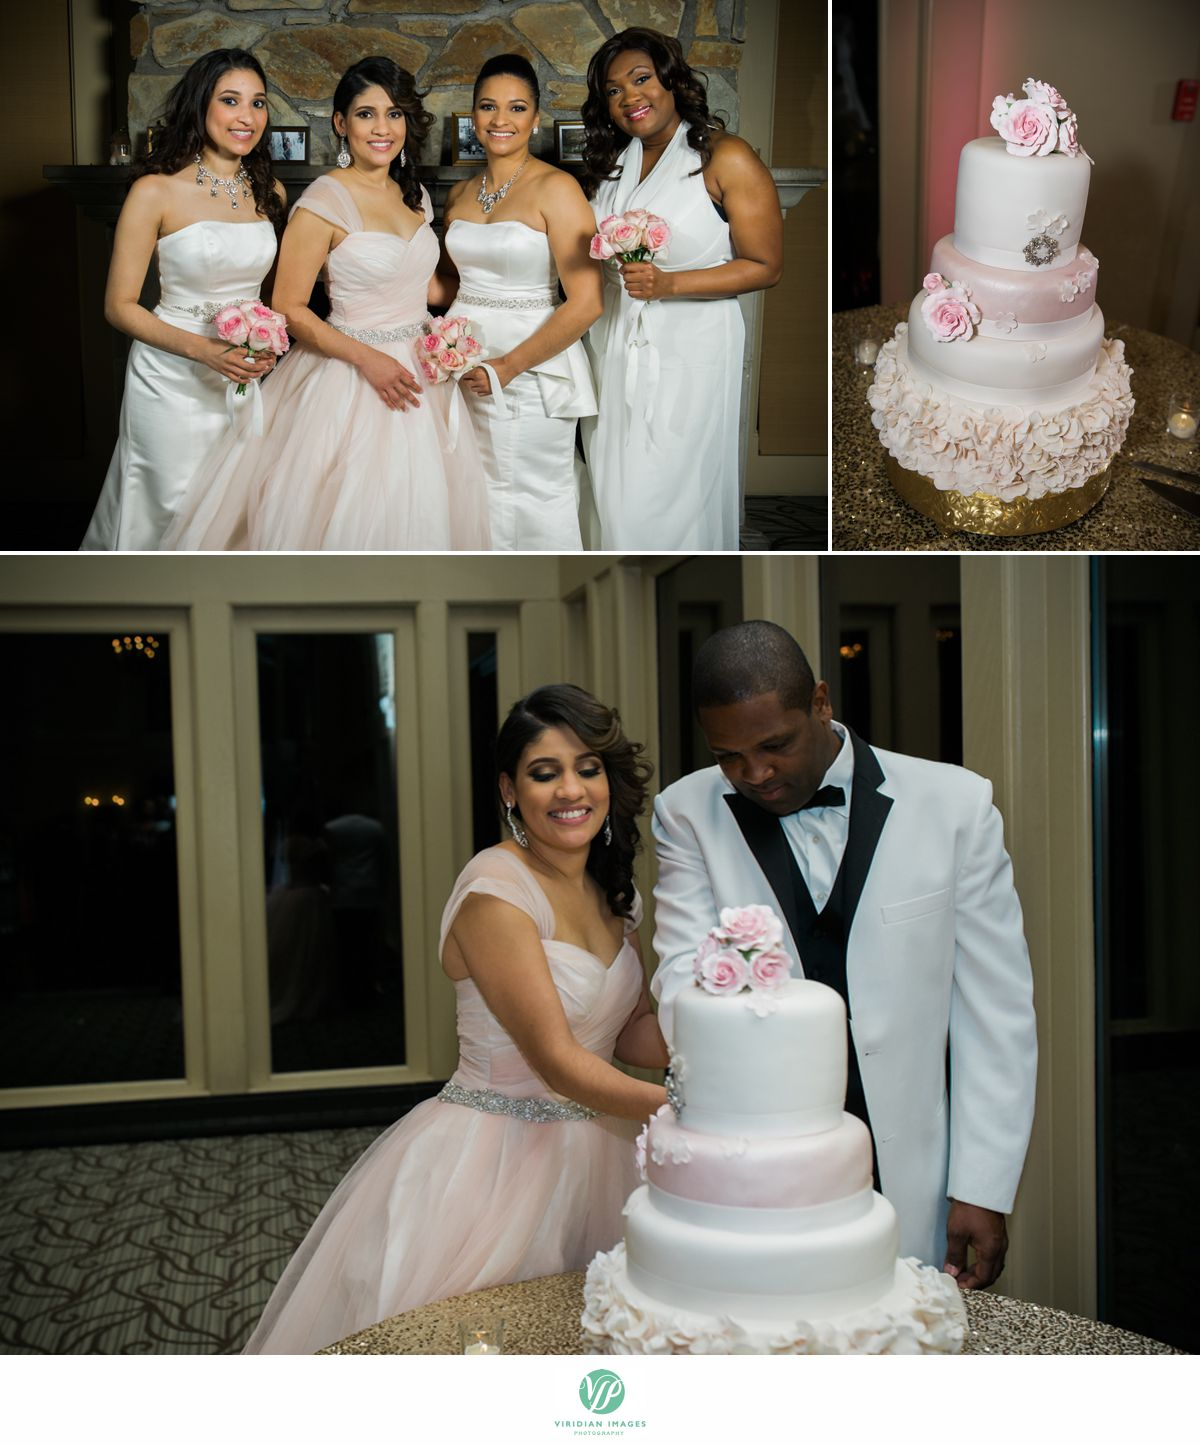 Country Club of the South Wedding Jeff and Annette Viridian Images Photography photo 24